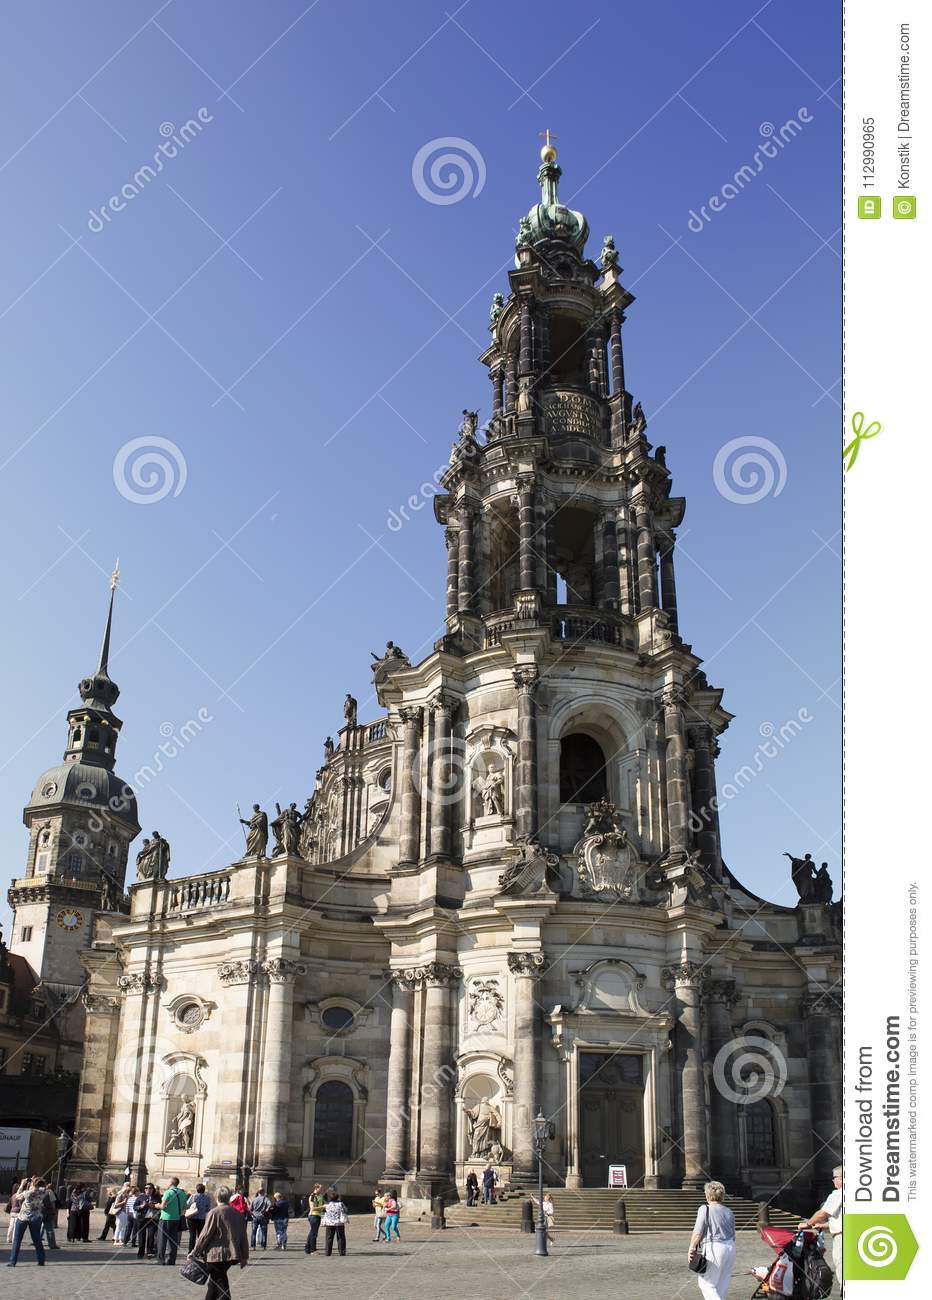 DRESDEN, GERMANY - SEPTEMBER 17: People walk in the center of Old town, near Holy Trinity or Hofkirche